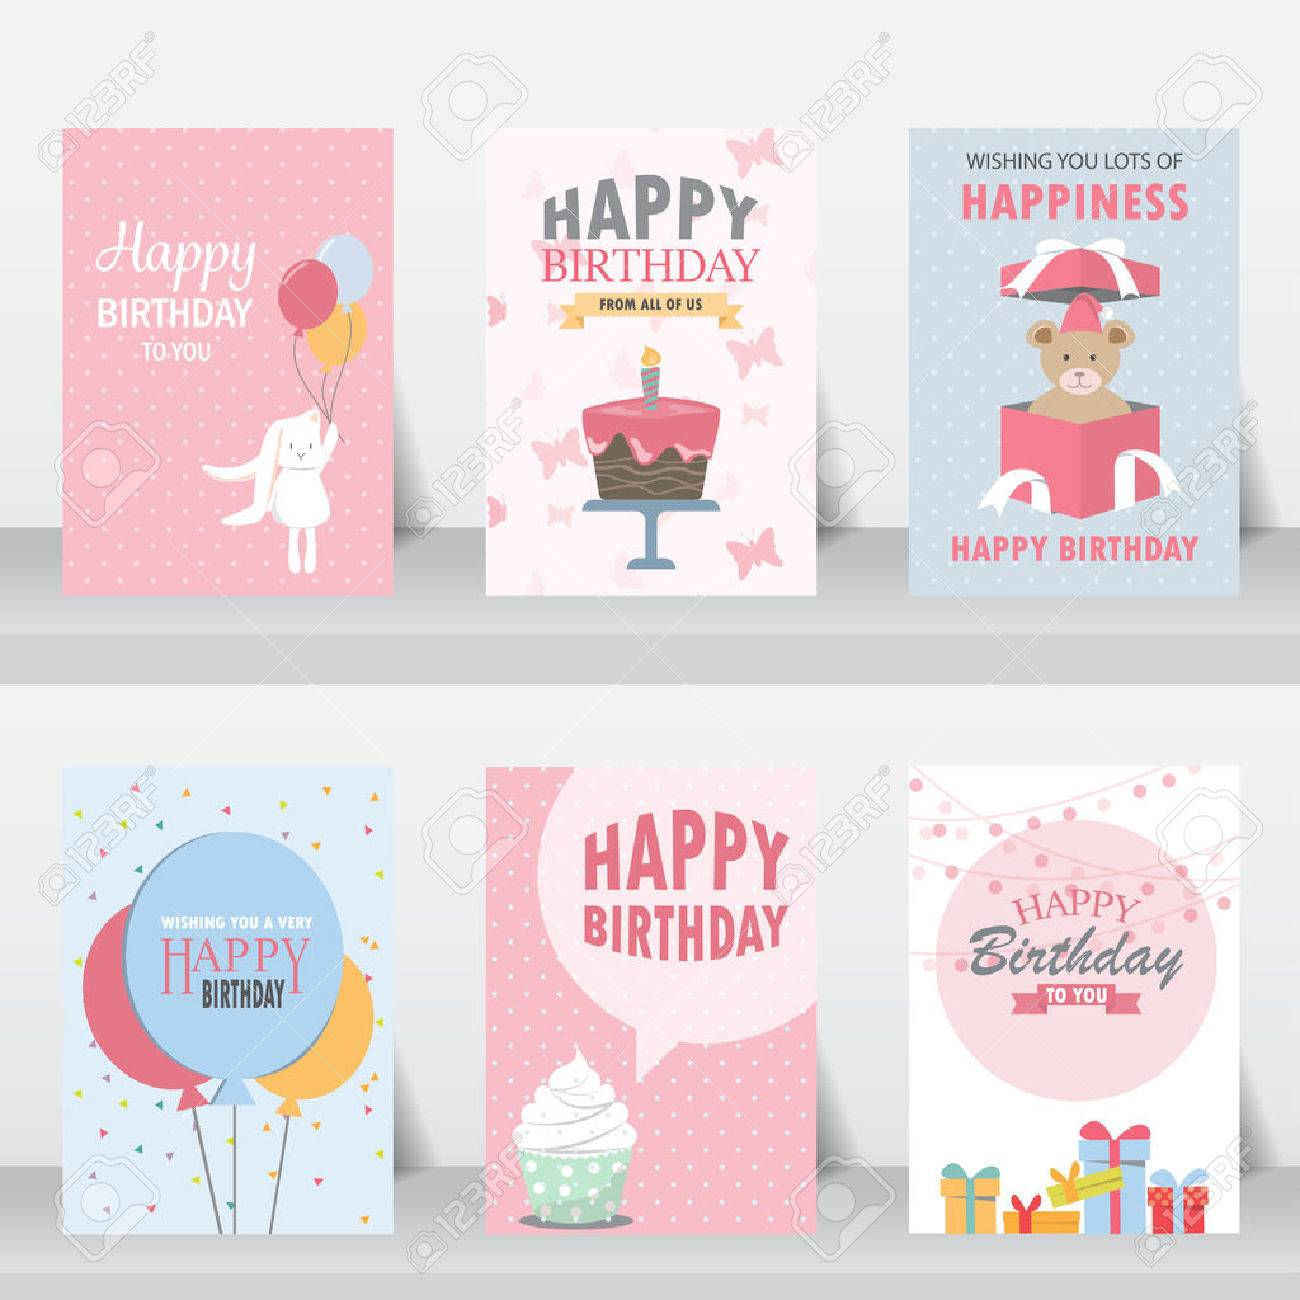 Birthday, Holiday, Christmas Greeting And Invitation Card. There ...